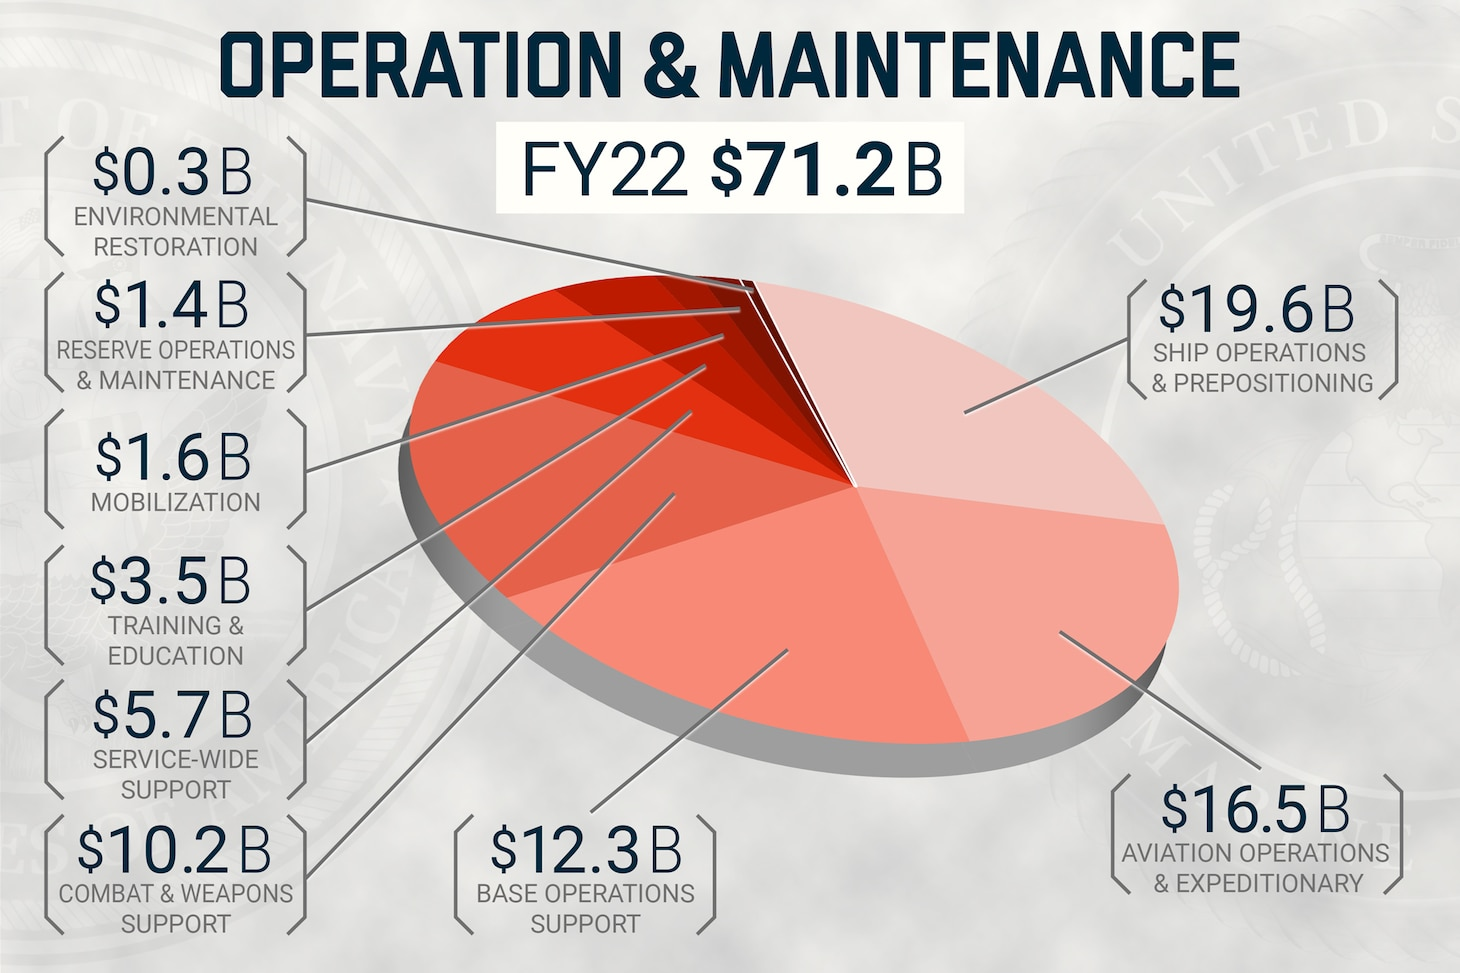 A U.S. Navy graphic illustrating the fiscal year 2022 Department of the Navy operation and maintenance budget.